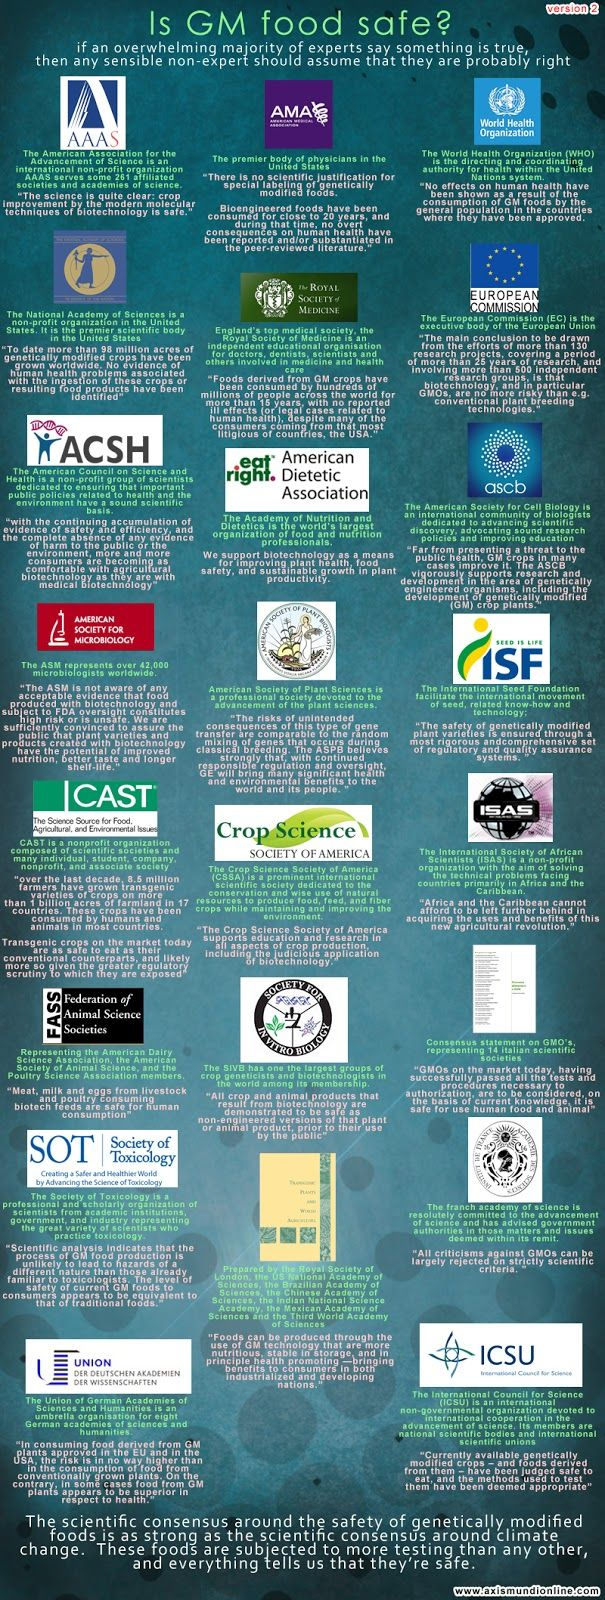 {infographic} Scientific consensus on the safety of GMOs